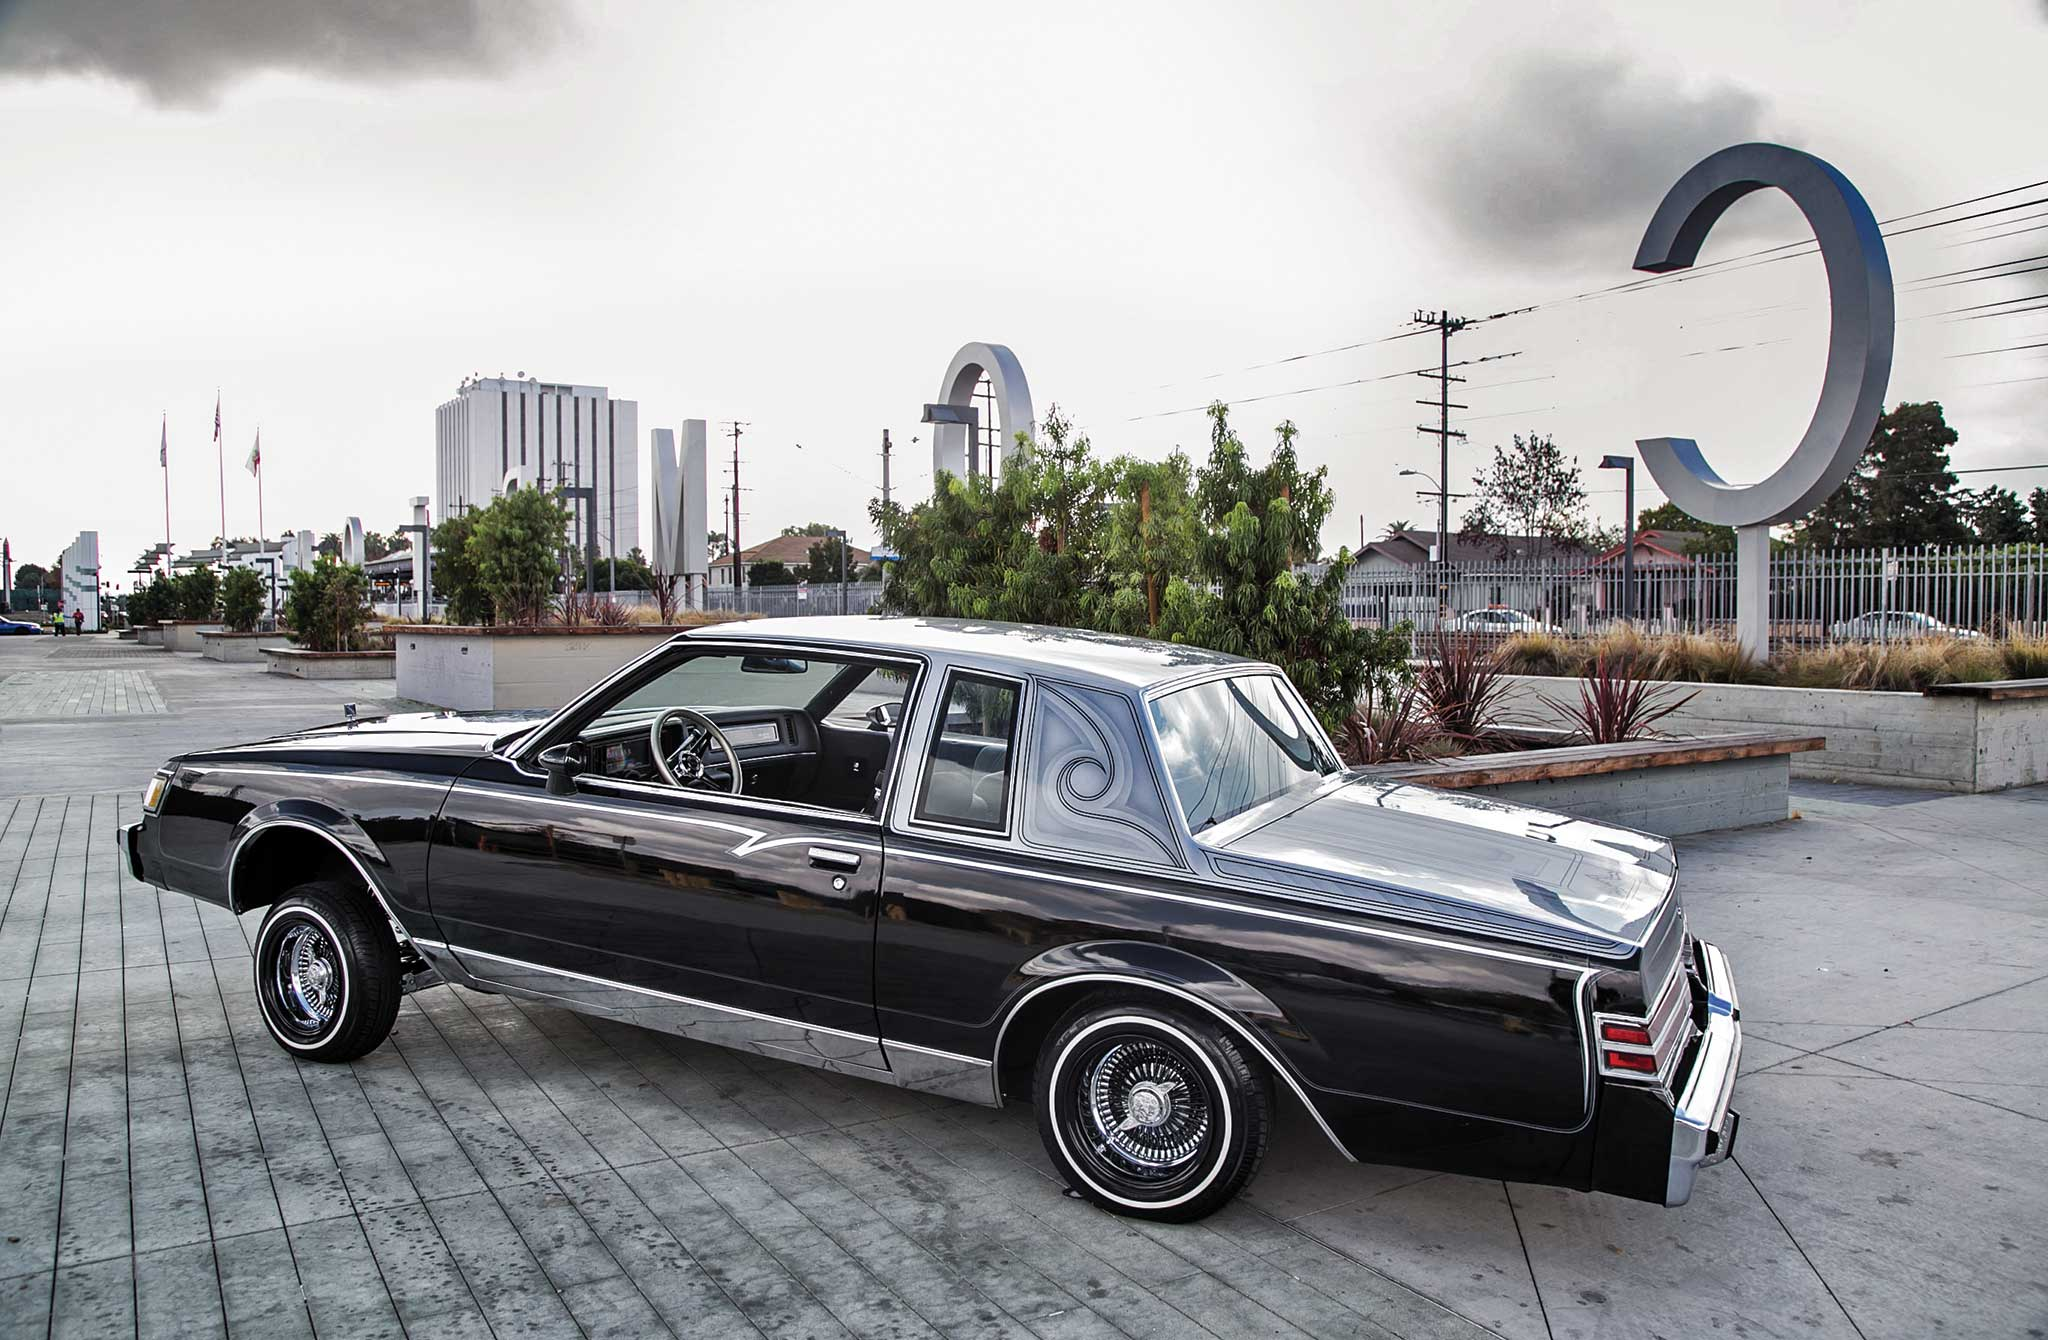 Classic Car Wallpaper Murals 1984 Buick Regal It S All Relative Lowrider